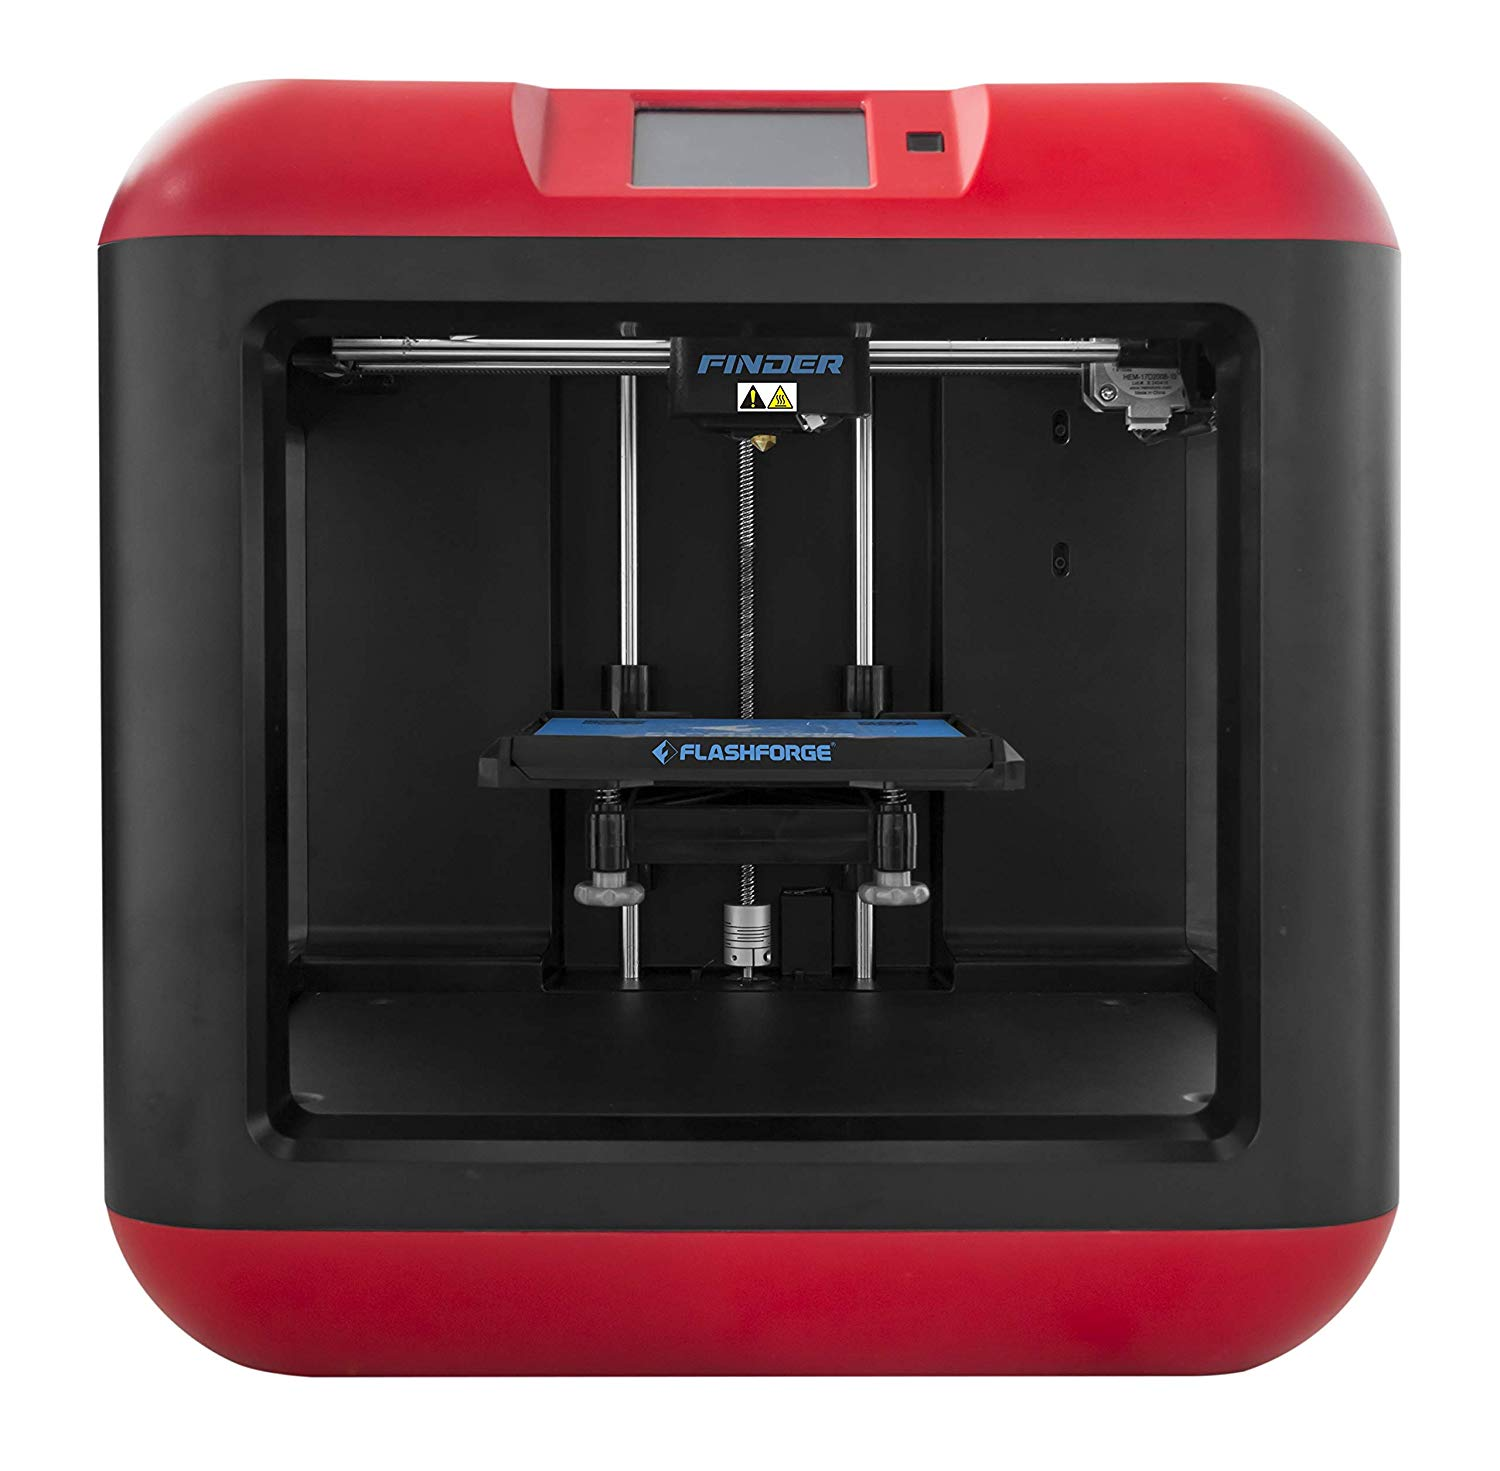 FlashForge Finder 3D Printer with Cloud, Wi-Fi, USB cable and Flash drive connectivity